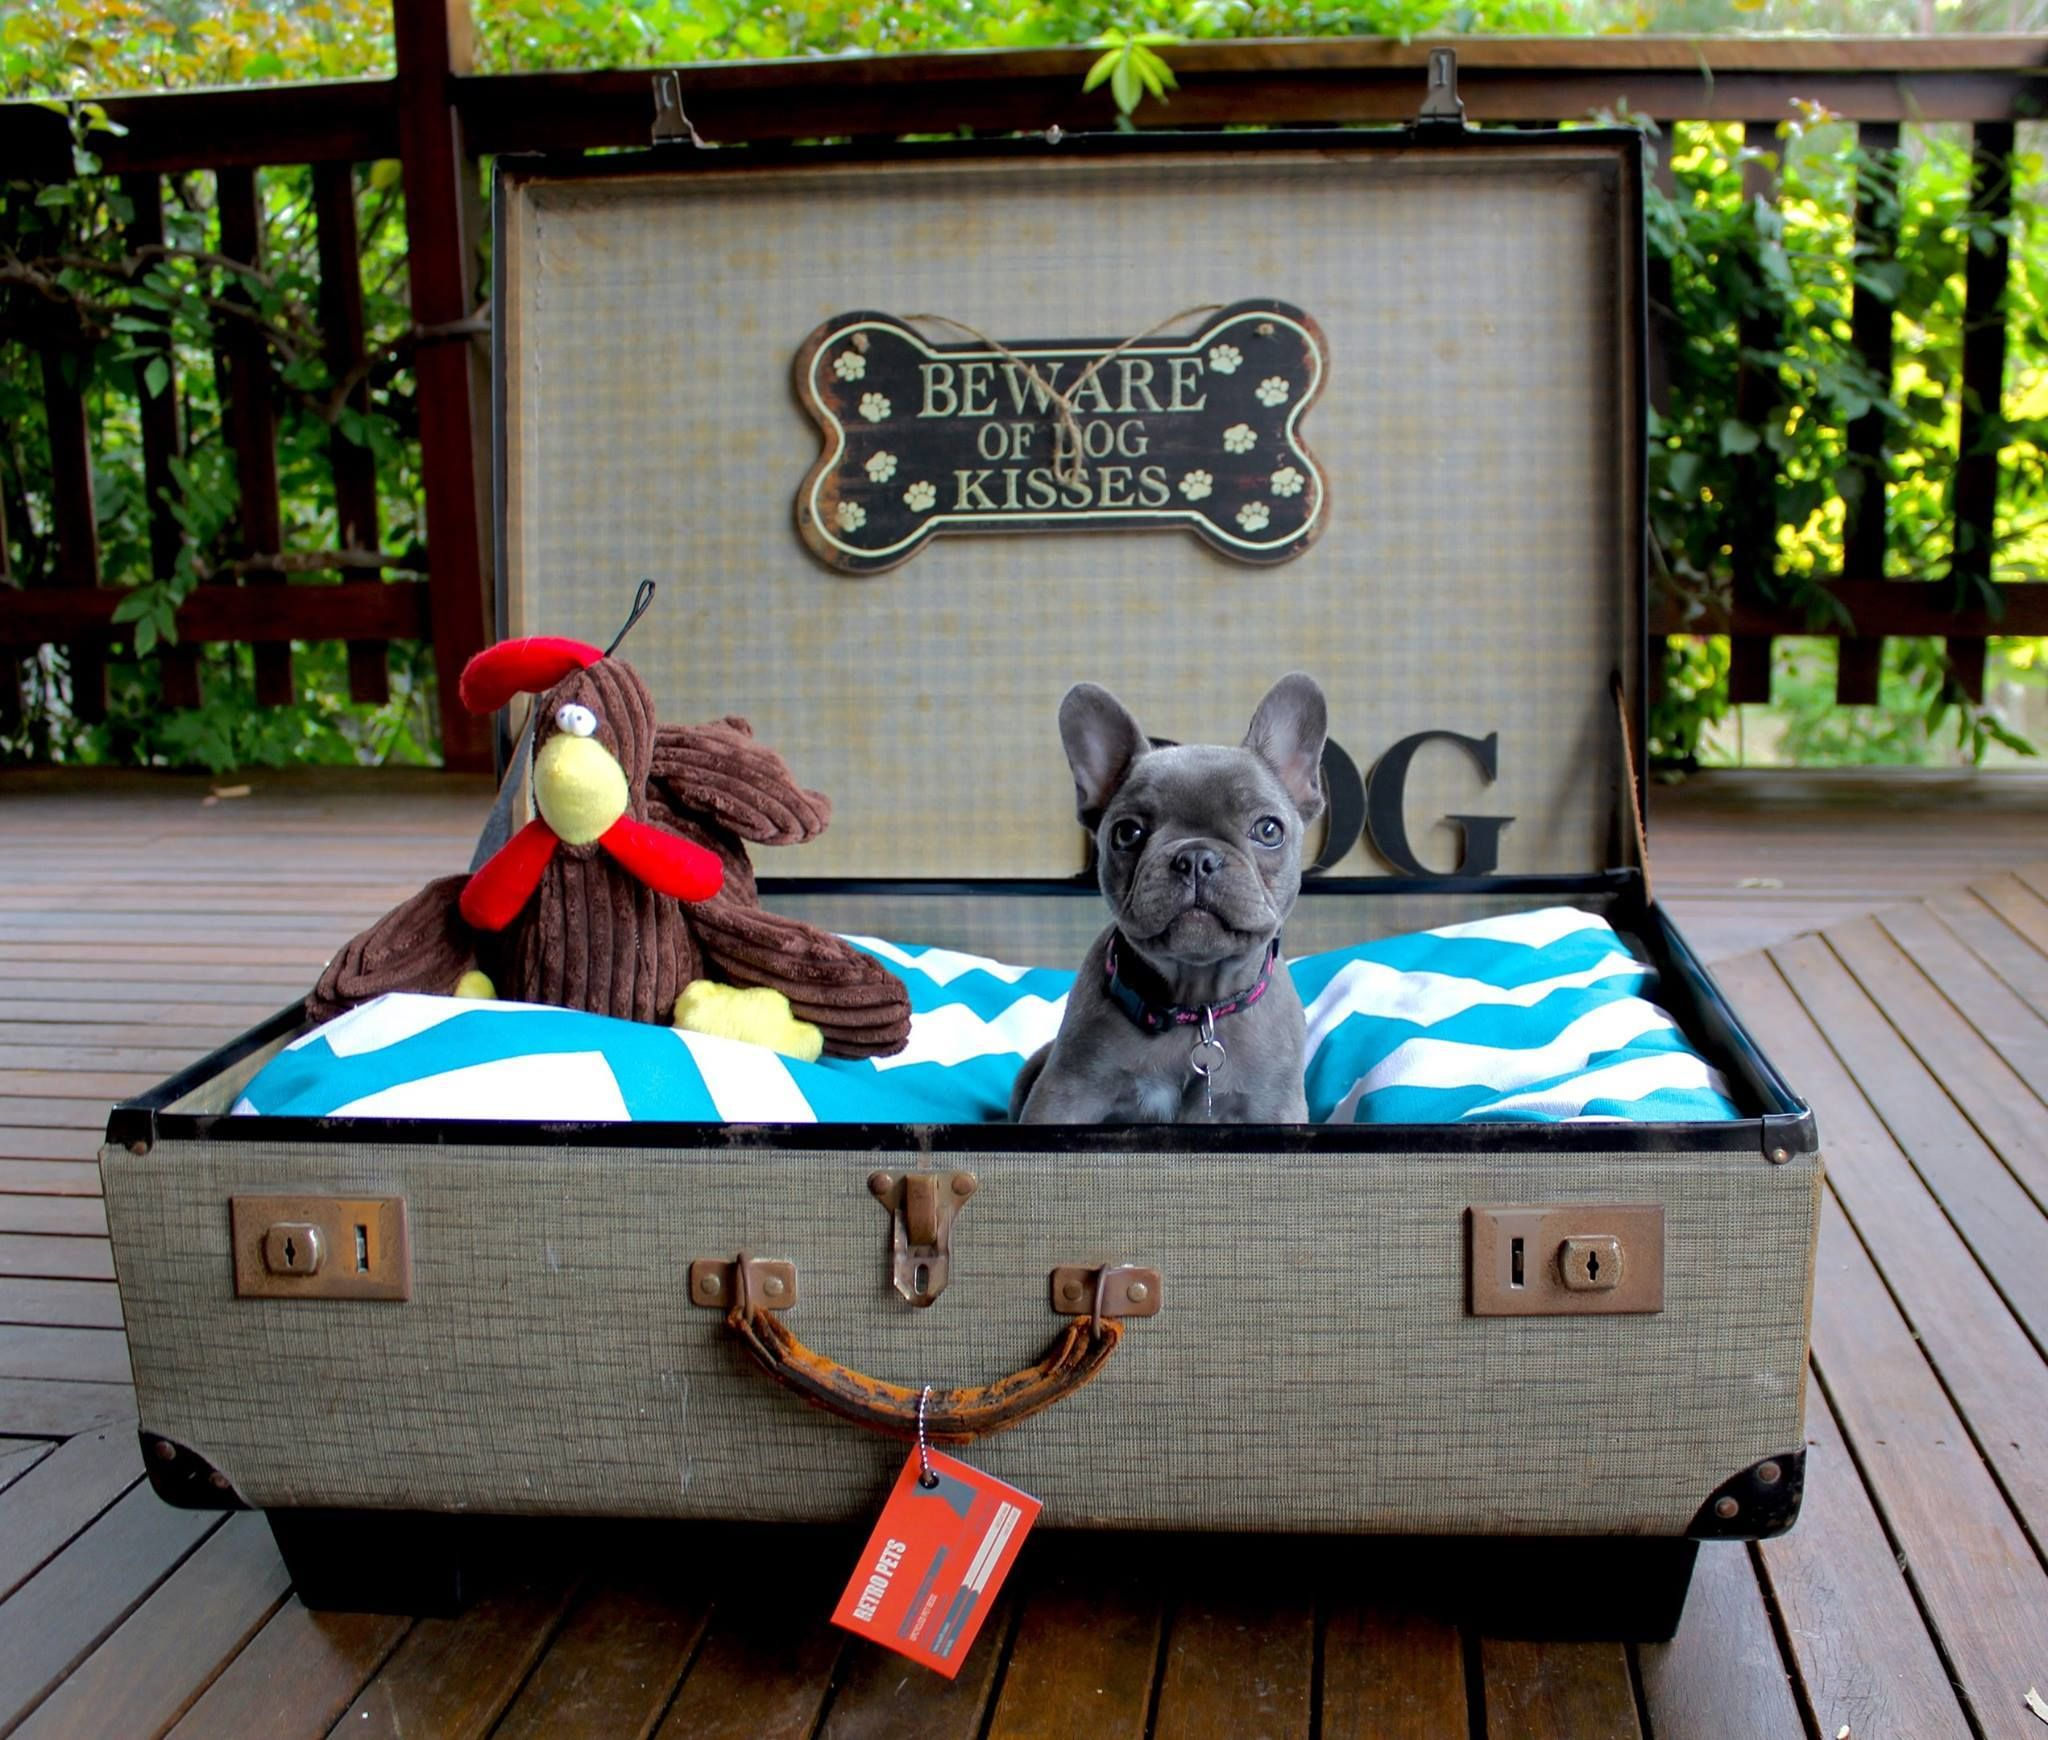 Upcycled Vintage Suitcase Dog Bed for sale 185 (frenchie